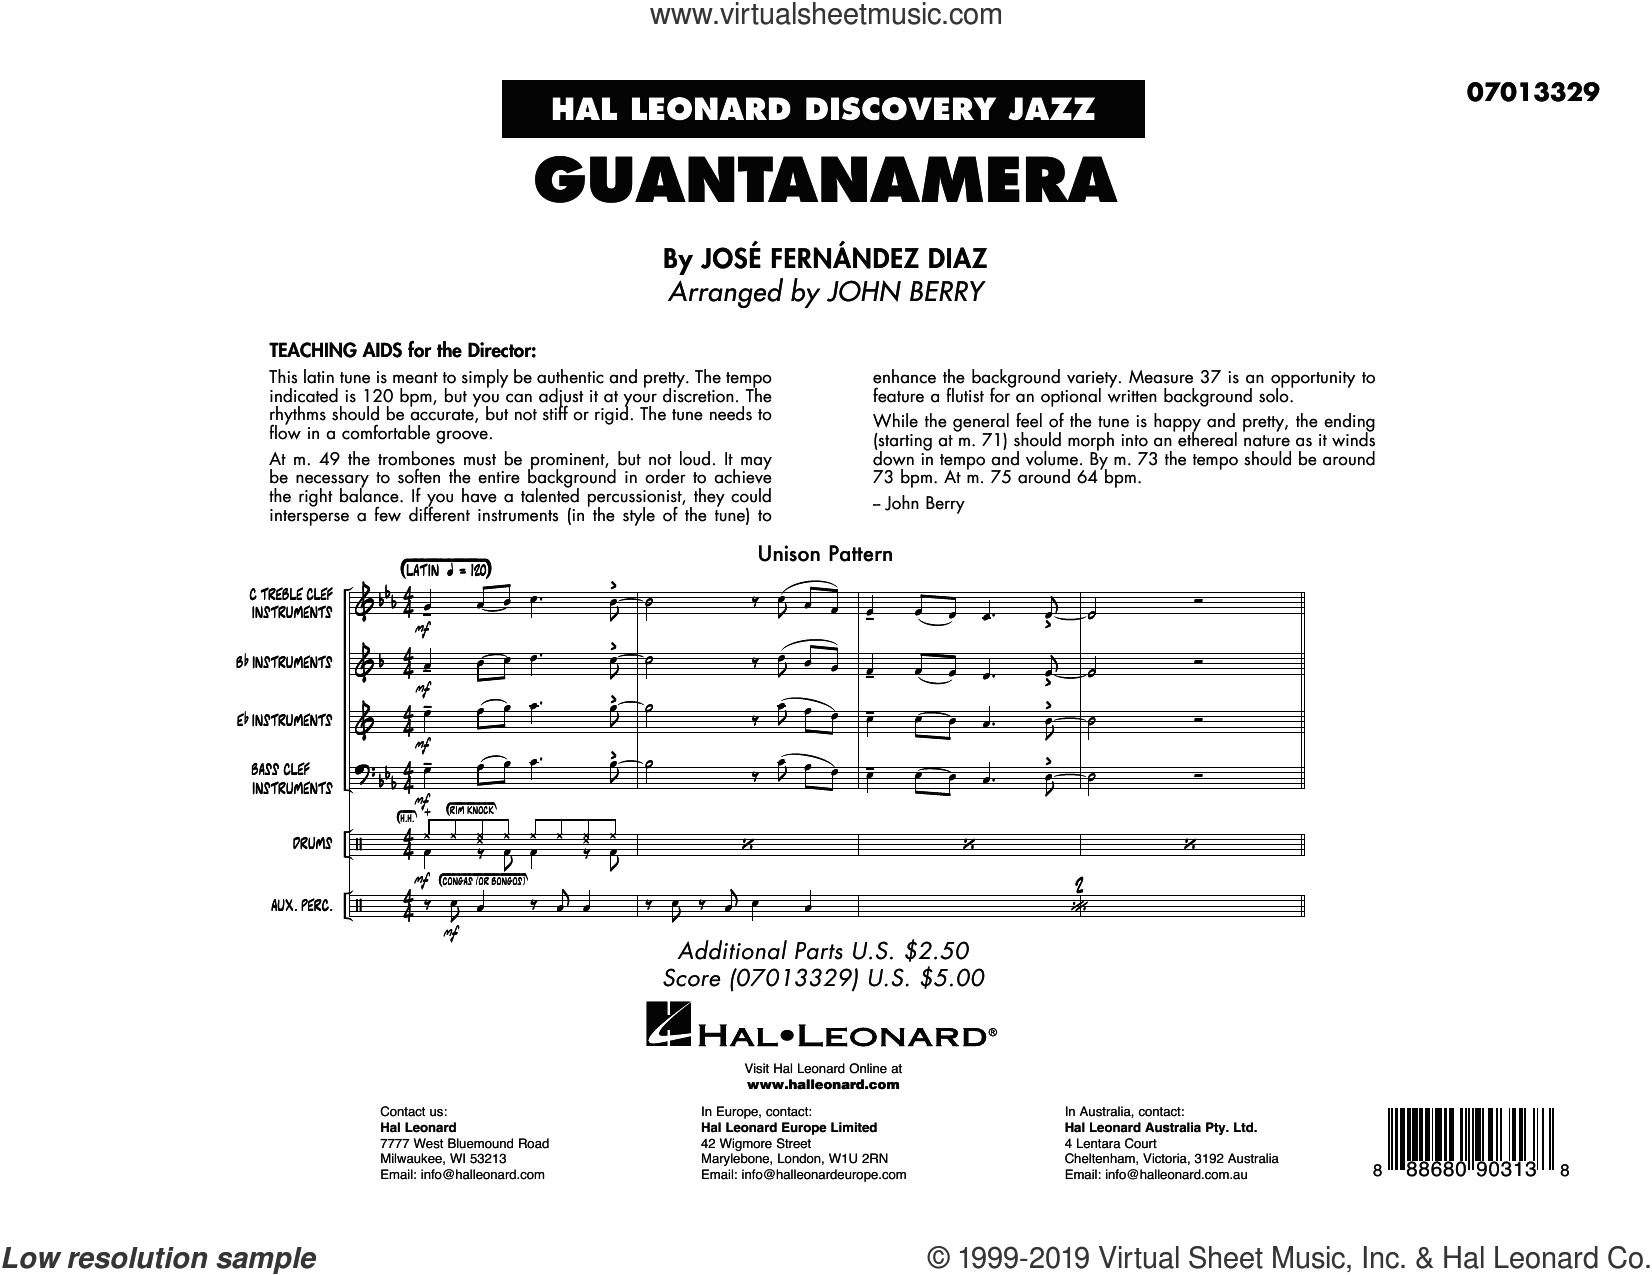 Guantanamera (arr. John Berry) (COMPLETE) sheet music for jazz band by John Berry and Jose Fernandez Diaz and Jose Fernandez Diaz, intermediate skill level